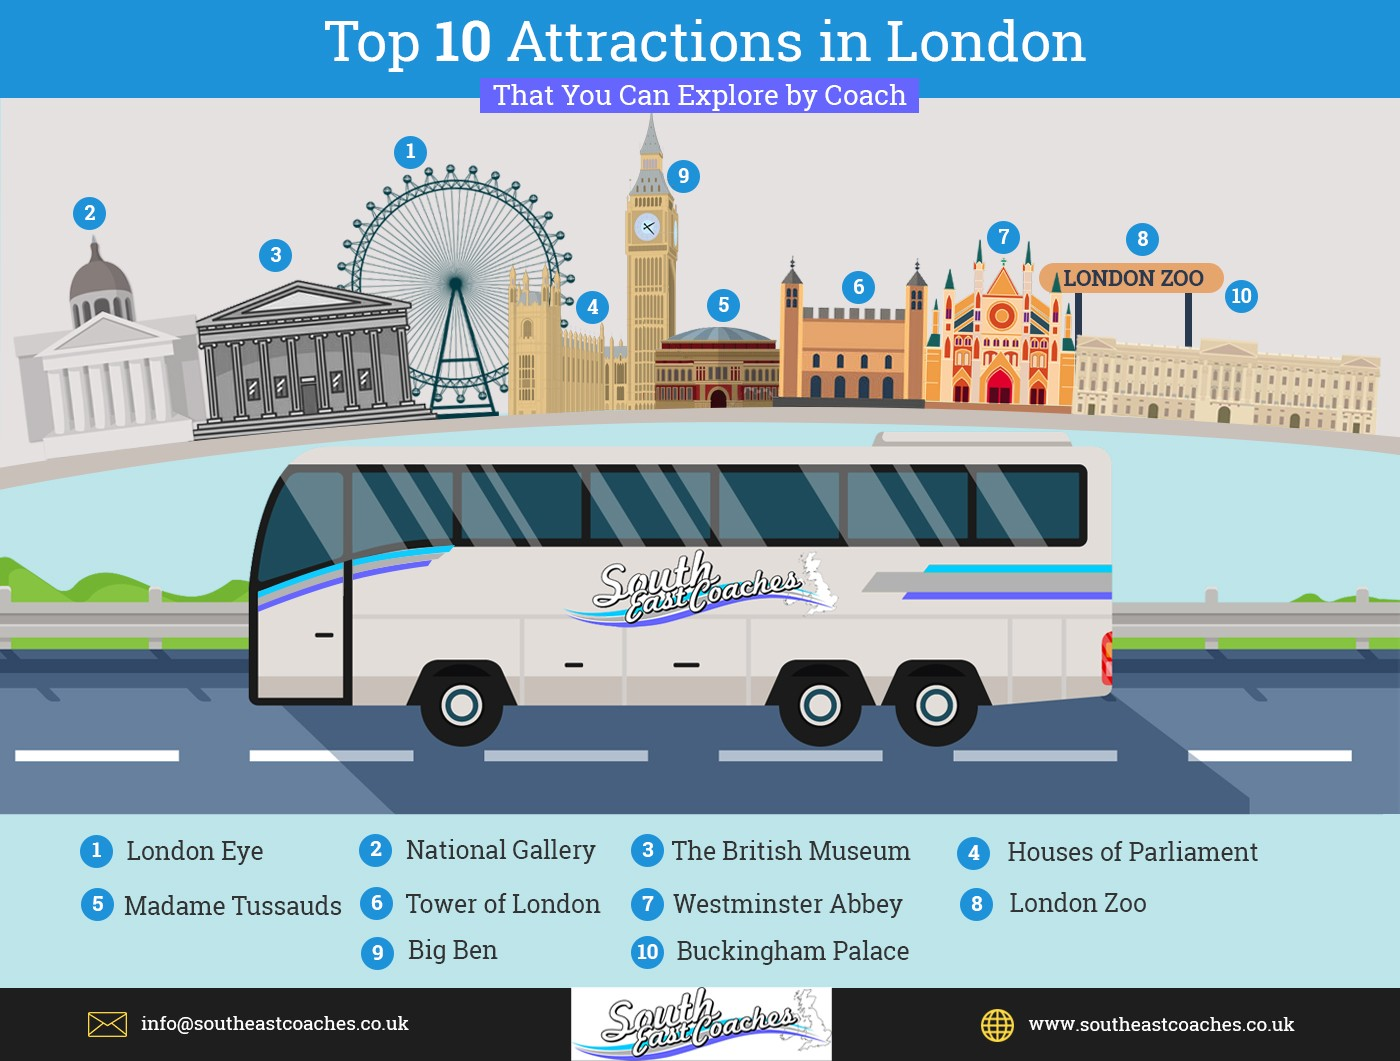 Top 10 Attractions in London